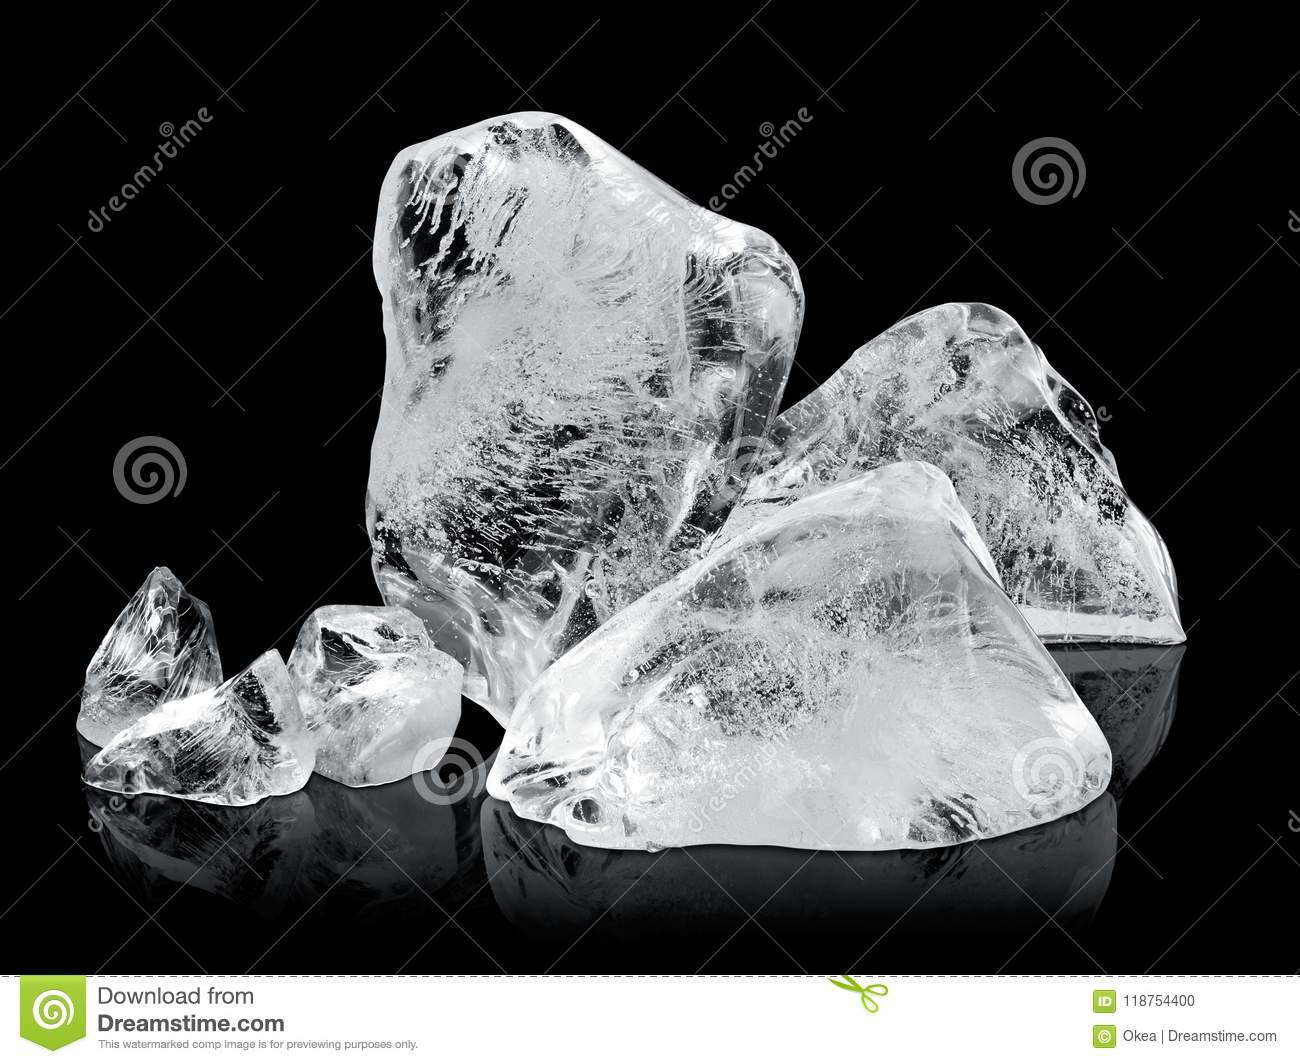 Download Ice blocks stock photo. Image of block, isolated, cube - 118754400